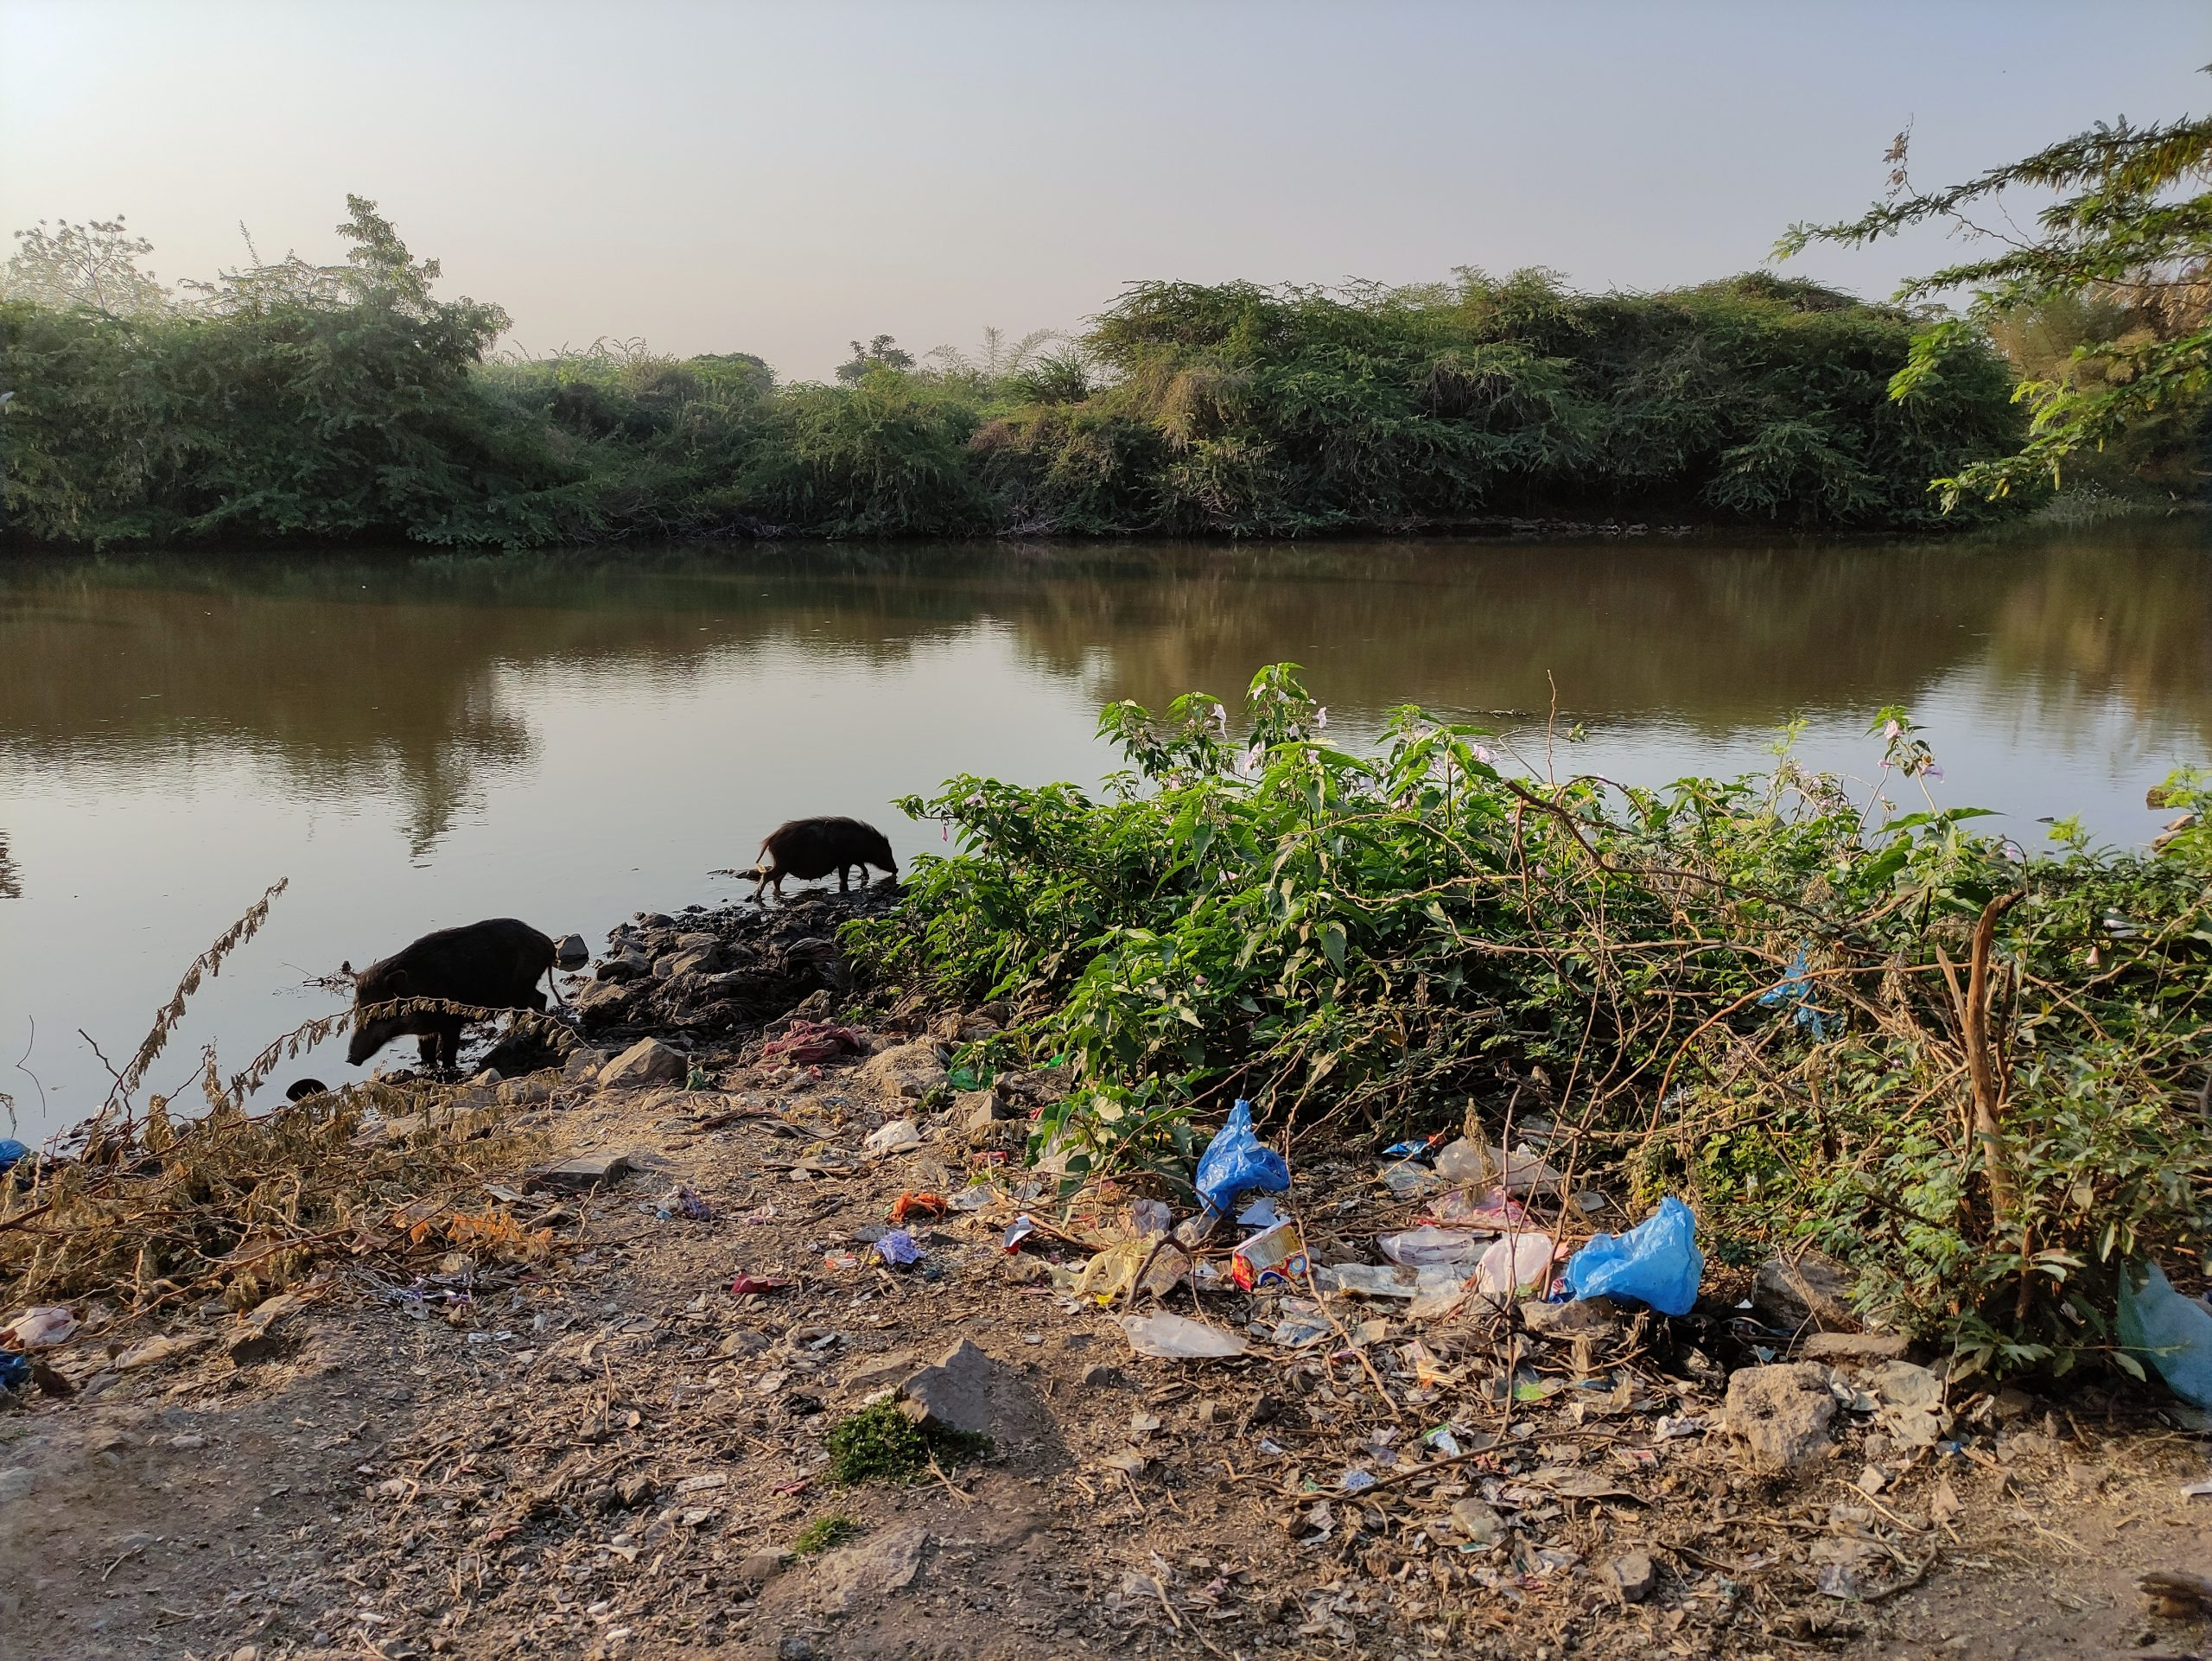 Pigs and waste material near a pond